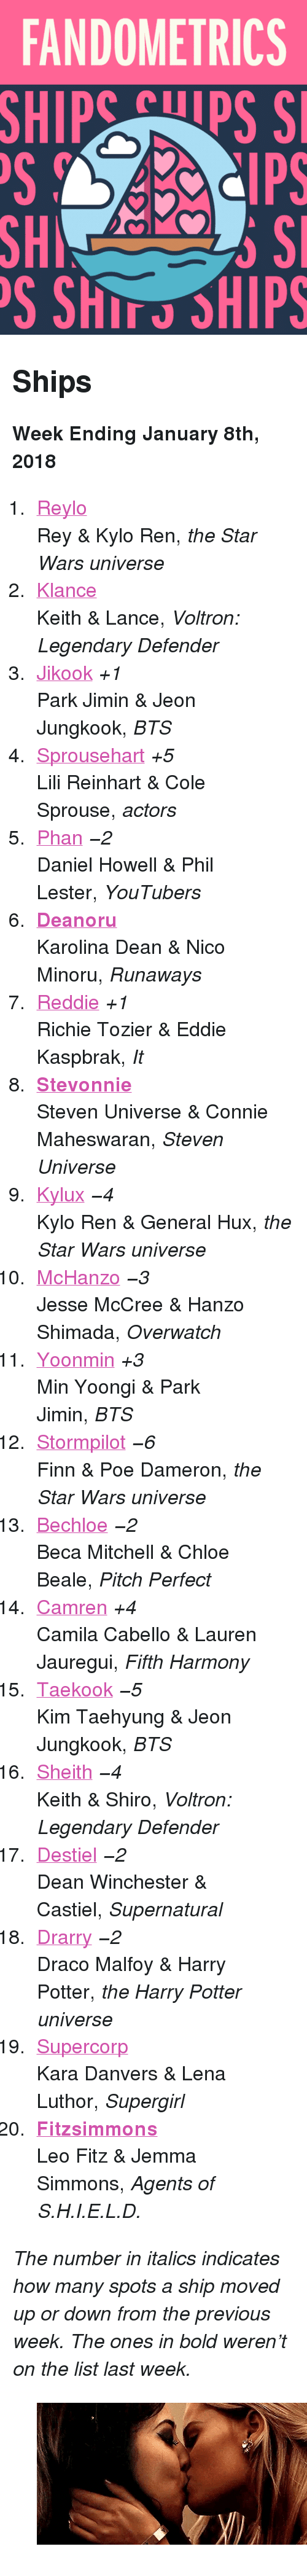 "Jikook: FANDOMETRICS  SHIP  Cps S  SH  S ShIT SHIPS <h2>Ships</h2><p><b>Week Ending January 8th, 2018</b></p><ol><li><a href=""http://www.tumblr.com/search/reylo"">Reylo</a><br/>Rey &amp; Kylo Ren, <i>the Star Wars universe</i><br/></li>  <li><a href=""http://www.tumblr.com/search/klance"">Klance</a><br/>Keith &amp; Lance, <i>Voltron: Legendary Defender</i><br/></li>  <li><a href=""http://www.tumblr.com/search/jikook"">Jikook</a> <i>+1</i><br/>Park Jimin &amp; Jeon Jungkook, <i>BTS</i><br/></li>  <li><a href=""http://www.tumblr.com/search/sprousehart"">Sprousehart</a> <i>+5</i><br/>Lili Reinhart &amp; Cole Sprouse, <i>actors</i><br/></li>  <li><a href=""http://www.tumblr.com/search/phan"">Phan</a> <i><i>−2</i></i><br/>Daniel Howell &amp; Phil Lester, <i>YouTubers</i><br/></li>  <li><a href=""http://www.tumblr.com/search/deanoru""><b>Deanoru</b></a><br/>Karolina Dean &amp; Nico Minoru, <i>Runaways</i><br/></li>  <li><a href=""http://www.tumblr.com/search/reddie"">Reddie</a> <i>+1</i><br/>Richie Tozier &amp; Eddie Kaspbrak, <i>It</i><br/></li>  <li><a href=""http://www.tumblr.com/search/stevonnie""><b>Stevonnie</b></a><br/>Steven Universe &amp; Connie Maheswaran, <i>Steven Universe</i><br/></li>  <li><a href=""http://www.tumblr.com/search/kylux"">Kylux</a> <i><i>−4</i></i><br/>Kylo Ren &amp; General Hux, <i>the Star Wars universe</i><br/></li>  <li><a href=""http://www.tumblr.com/search/mchanzo"">McHanzo</a> <i><i>−3</i></i><br/>Jesse McCree &amp; Hanzo Shimada, <i>Overwatch</i><br/></li>  <li><a href=""http://www.tumblr.com/search/yoonmin"">Yoonmin</a> <i>+3</i><br/>Min Yoongi &amp; Park Jimin, <i>BTS</i><br/></li>  <li><a href=""http://www.tumblr.com/search/stormpilot"">Stormpilot</a> <i><i>−6</i></i><br/>Finn &amp; Poe Dameron, <i>the Star Wars universe</i><br/></li>  <li><a href=""http://www.tumblr.com/search/bechloe"">Bechloe</a> <i><i>−2</i></i><br/>Beca Mitchell &amp; Chloe Beale, <i>Pitch Perfect</i><br/></li>  <li><a href=""http://www.tumblr.com/search/camren"">Camren</a> <i>+4</i><br/>Camila Cabello &amp; Lauren Jauregui, <i>Fifth Harmony</i><br/></li>  <li><a href=""http://www.tumblr.com/search/taekook"">Taekook</a> <i><i>−5</i></i><br/>Kim Taehyung &amp; Jeon Jungkook, <i>BTS</i><br/></li>  <li><a href=""http://www.tumblr.com/search/sheith"">Sheith</a> <i><i>−4</i></i><br/>Keith &amp; Shiro, <i>Voltron: Legendary Defender</i><br/></li>  <li><a href=""http://www.tumblr.com/search/destiel"">Destiel</a> <i><i>−2</i></i><br/>Dean Winchester &amp; Castiel, <i>Supernatural</i><br/></li>  <li><a href=""http://www.tumblr.com/search/drarry"">Drarry</a> <i><i>−2</i></i><br/>Draco Malfoy &amp; Harry Potter, <i>the Harry Potter universe</i><br/></li>  <li><a href=""http://www.tumblr.com/search/supercorp"">Supercorp</a><br/>Kara Danvers &amp; Lena Luthor, <i>Supergirl</i><br/></li>  <li><a href=""http://www.tumblr.com/search/fitzsimmons""><b>Fitzsimmons</b></a><br/>Leo Fitz &amp; Jemma Simmons, <i>Agents of S.H.I.E.L.D.</i><br/></li></ol><p><i>The number in italics indicates how many spots a ship moved up or down from the previous week. The ones in bold weren't on the list last week.</i></p><figure class=""tmblr-full pinned-target"" data-orig-height=""218"" data-orig-width=""394"" data-tumblr-attribution=""singereden:4zq513jTN_jDcx_mzK4kKQ:ZRGv_i2Th7V5t""><img src=""https://78.media.tumblr.com/5626dc45109b138053aed008b64fe1ff/tumblr_p210qlr6T01ul1c29o1_500.gif"" data-orig-height=""218"" data-orig-width=""394""/></figure>"